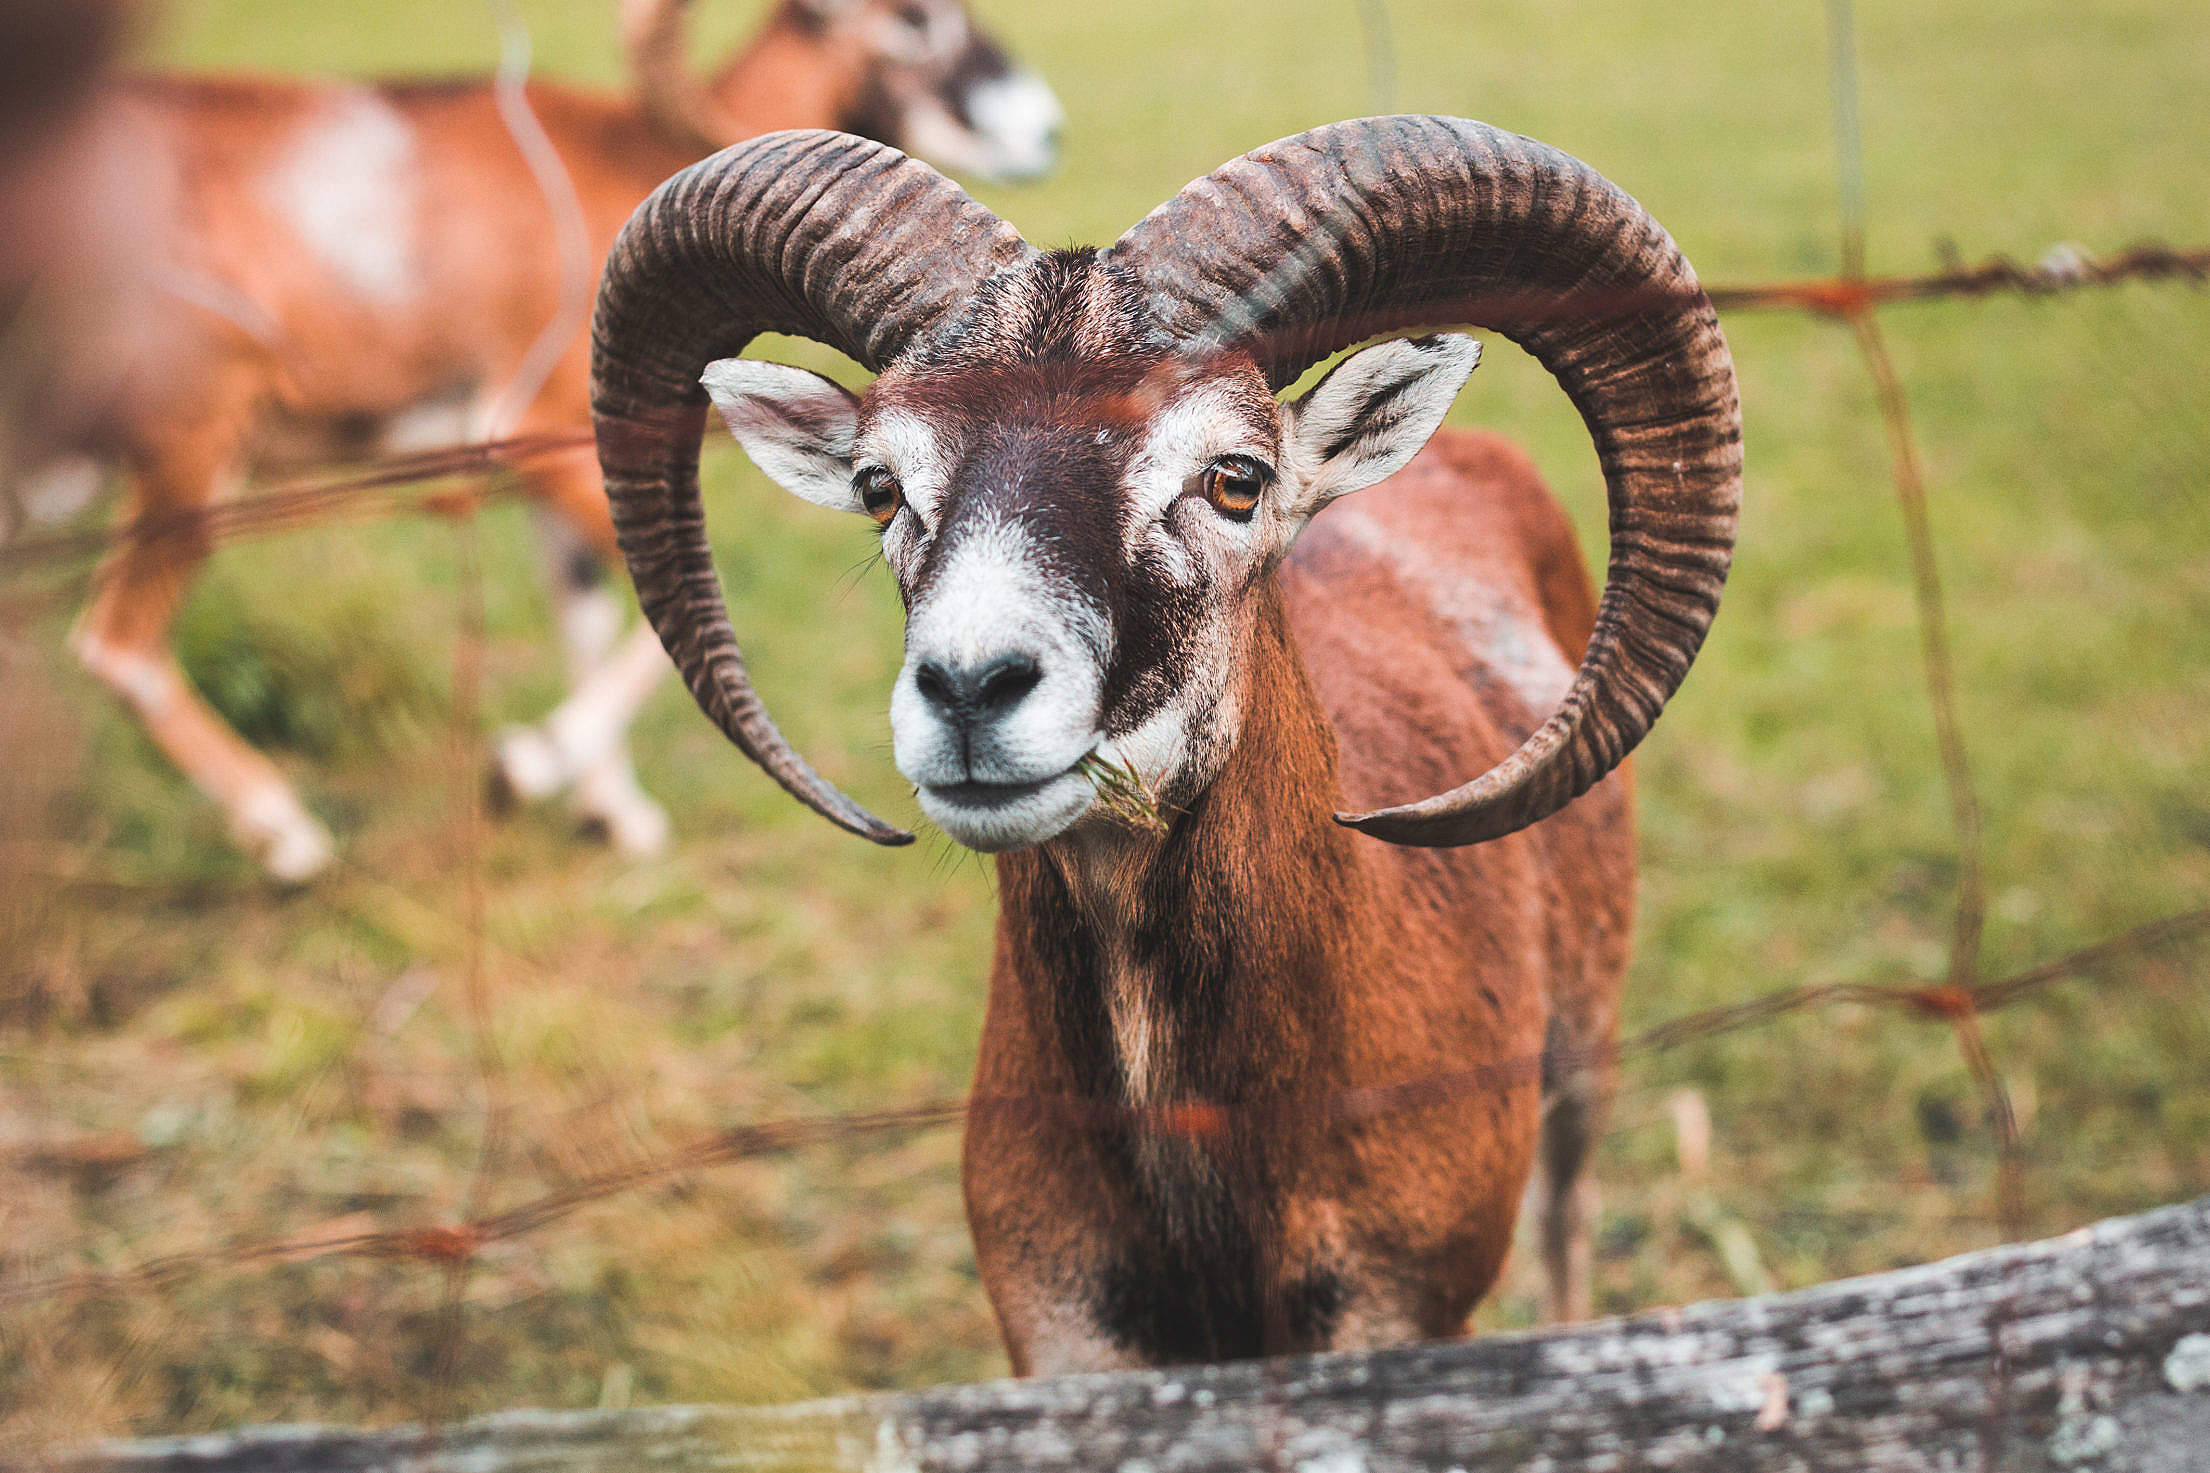 A Goat with Big Horns Behind the Fence Free Stock Photo